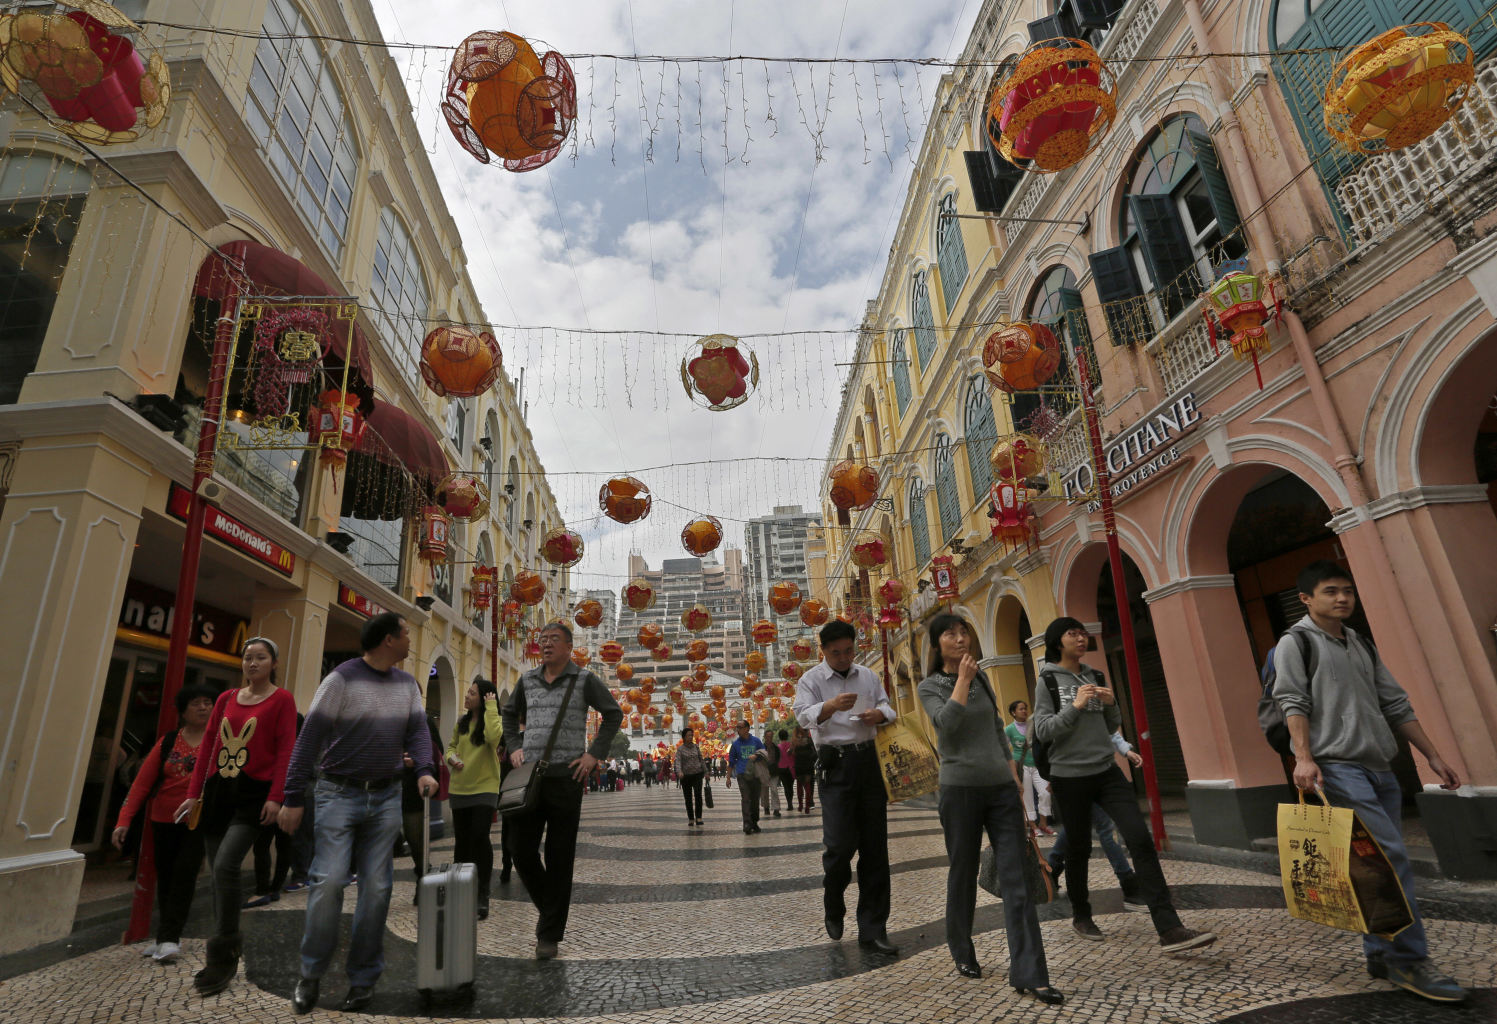 2014. The Lunar New Year this year marks the year of the more